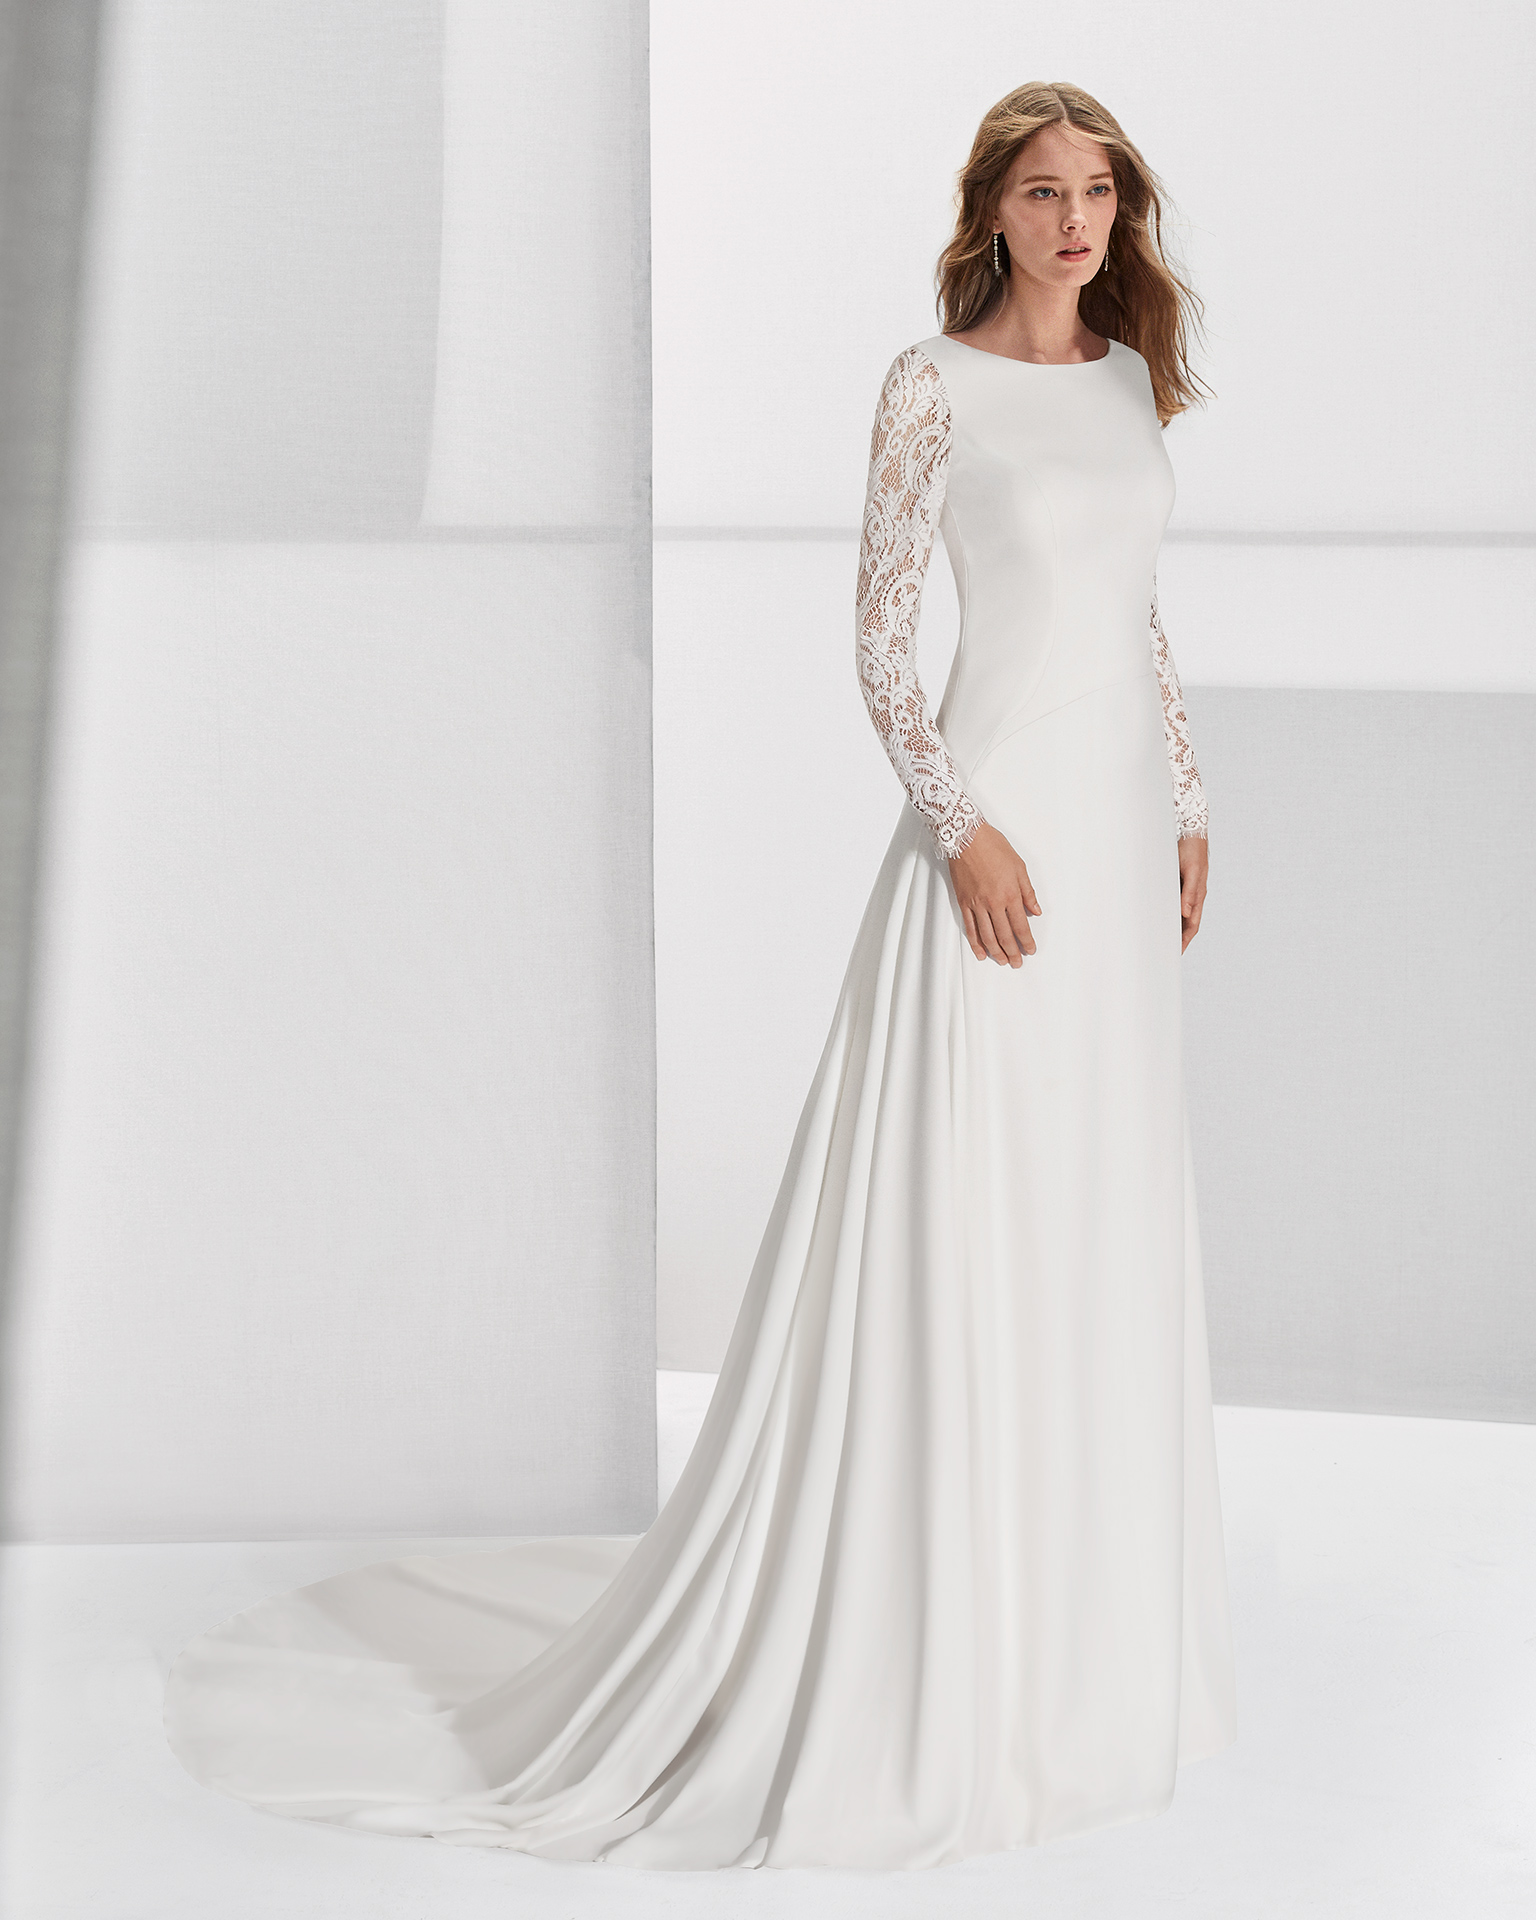 Crepe and lace sheath wedding dress with long sleeves, bateau neckline and low back.